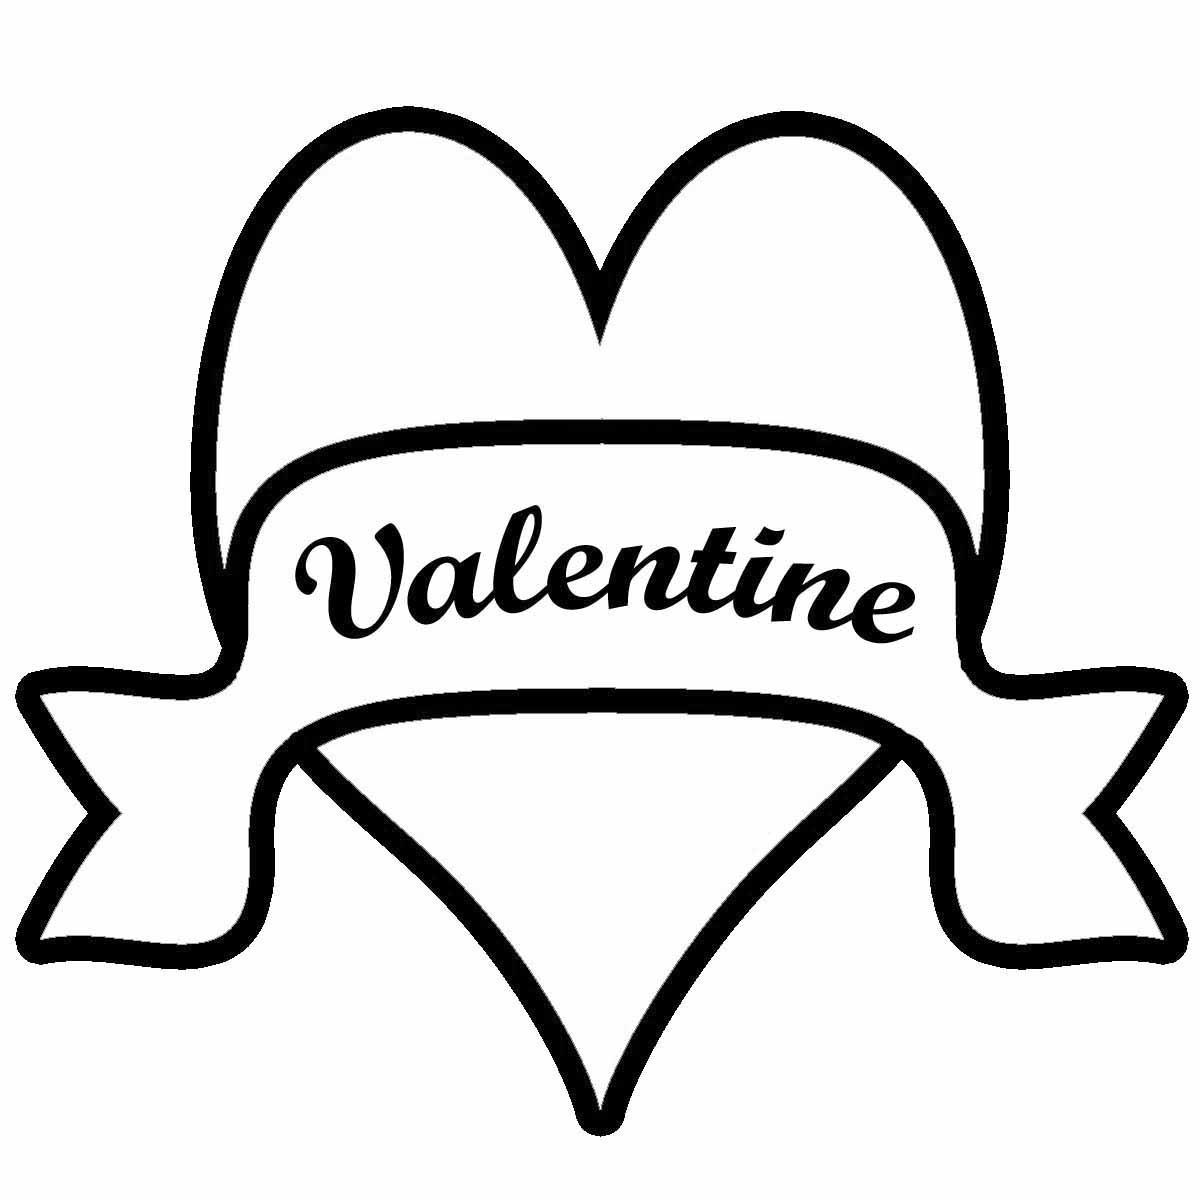 Sword through heart clipart b&w jpg transparent download Free Drawings Of Hearts With Banners, Download Free Clip Art ... jpg transparent download